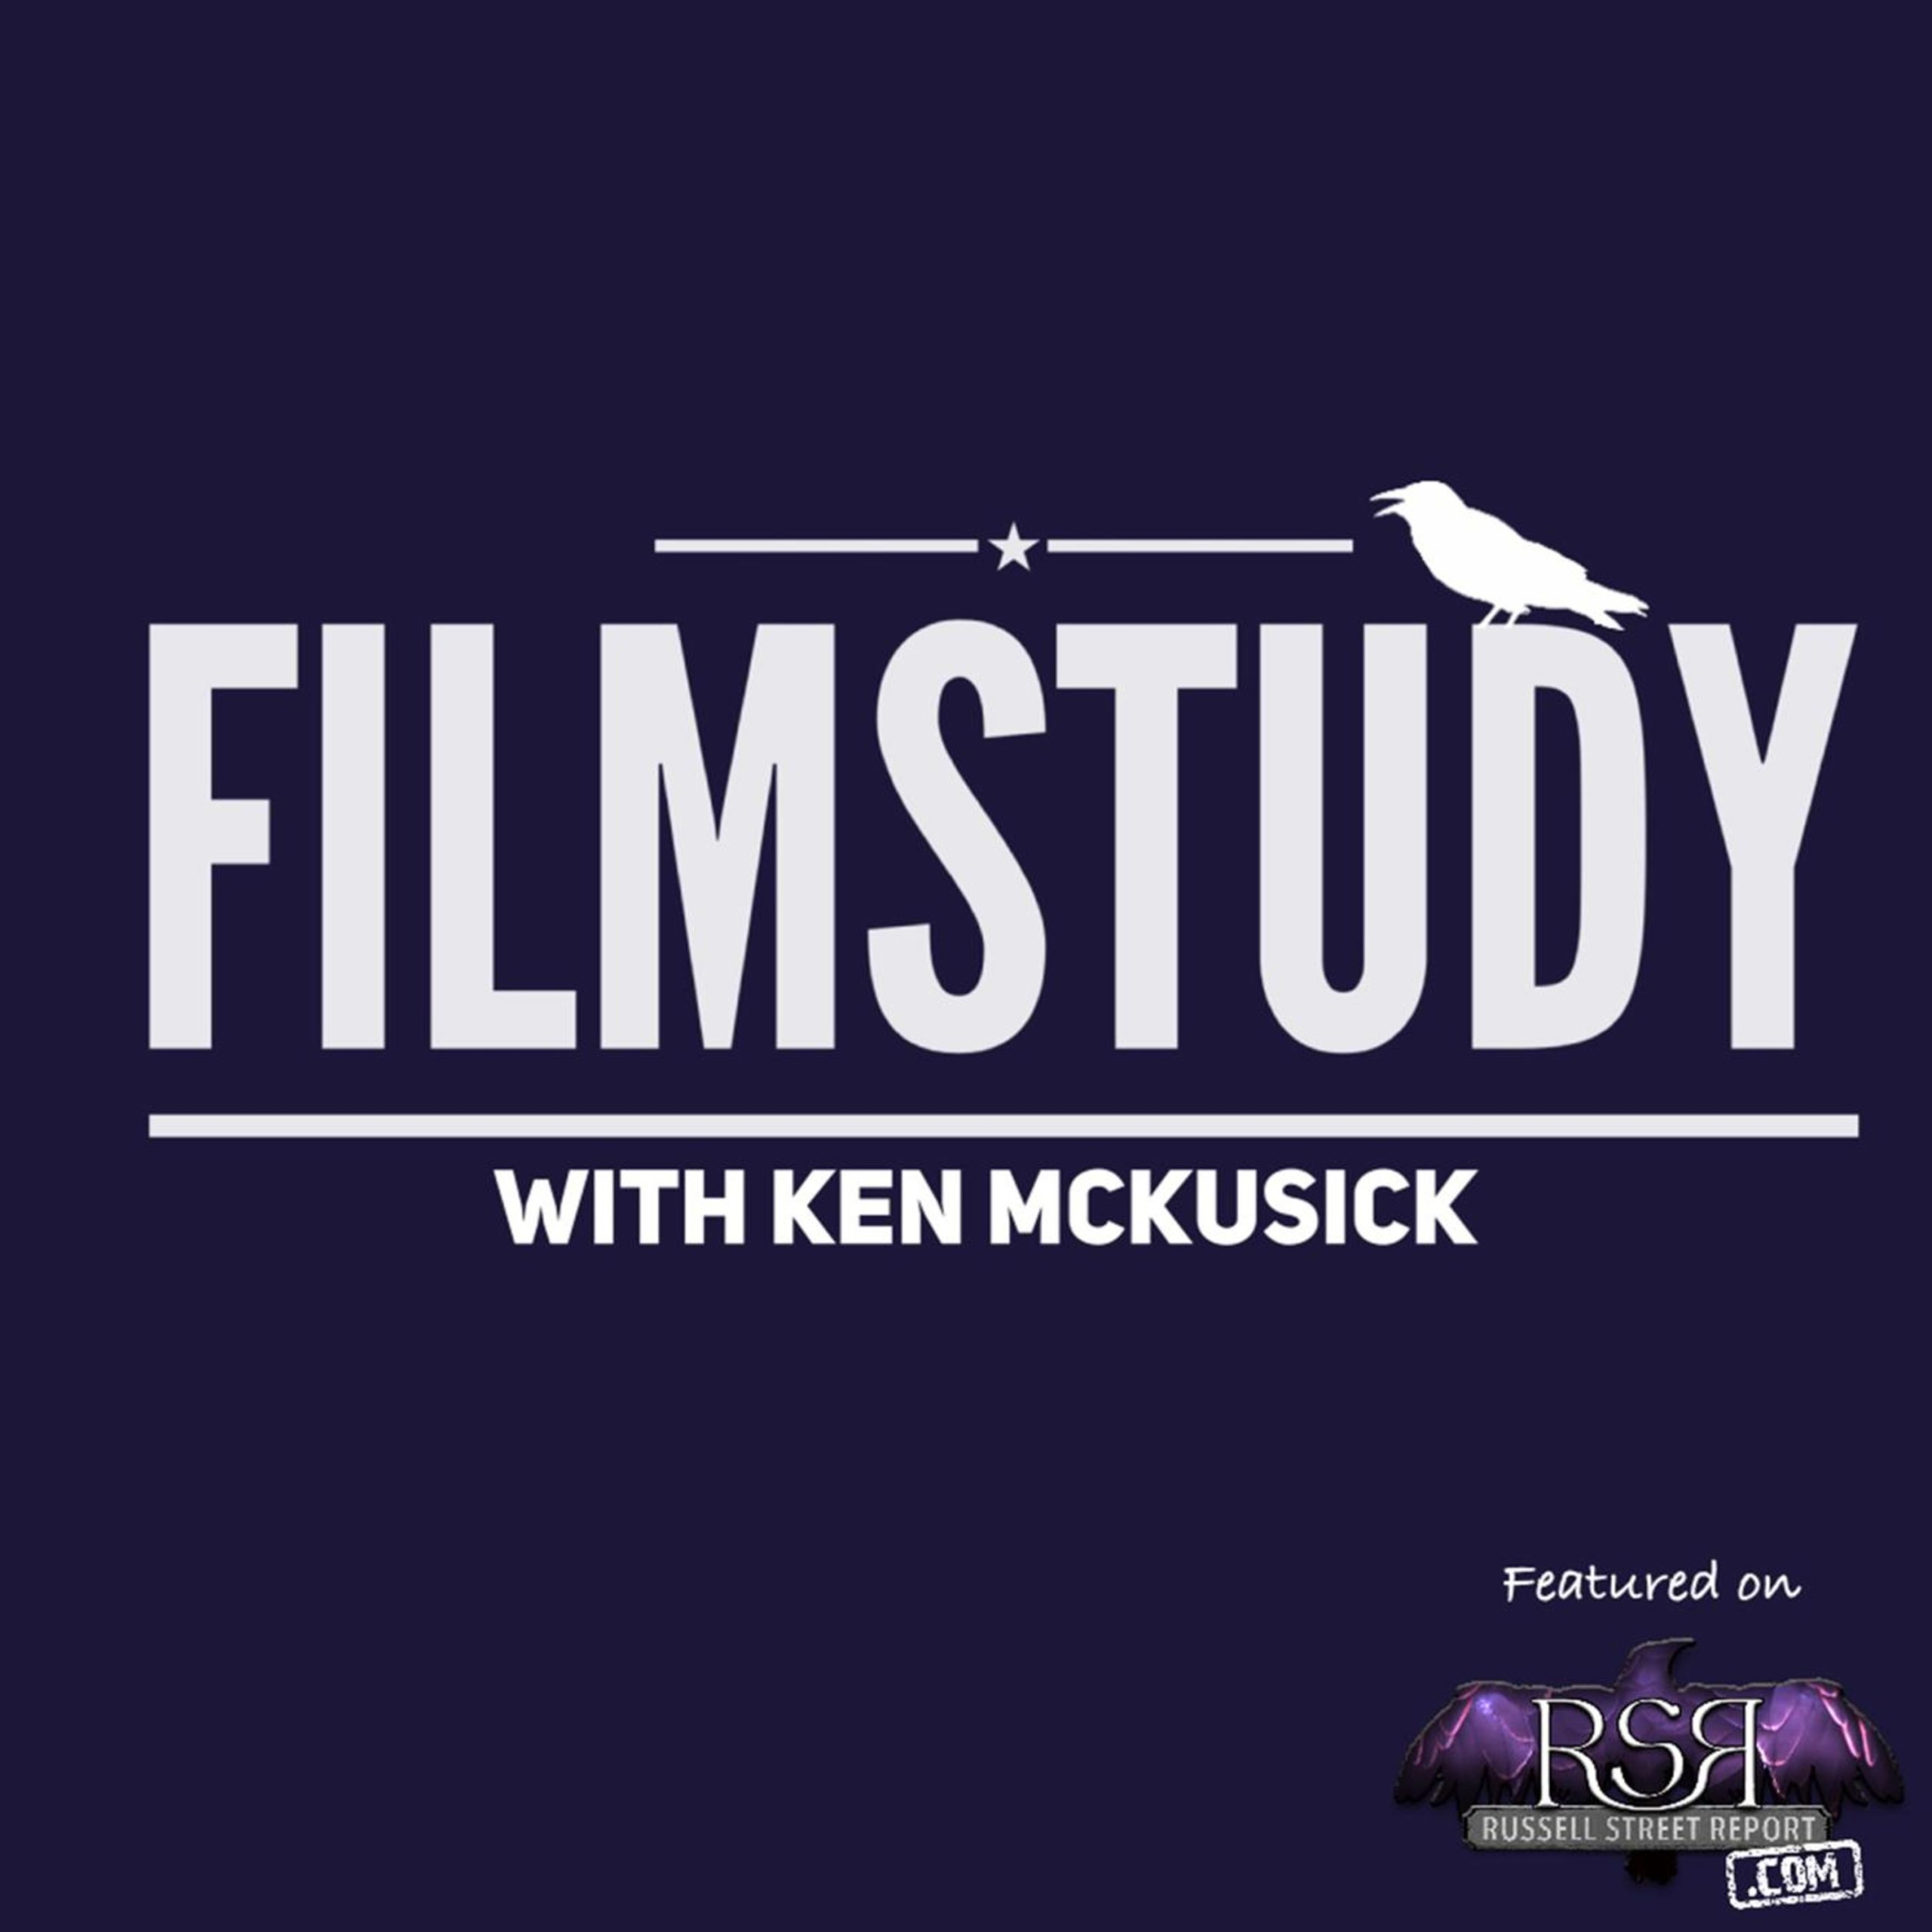 Filmstudy 2018 : Ray Lewis Special